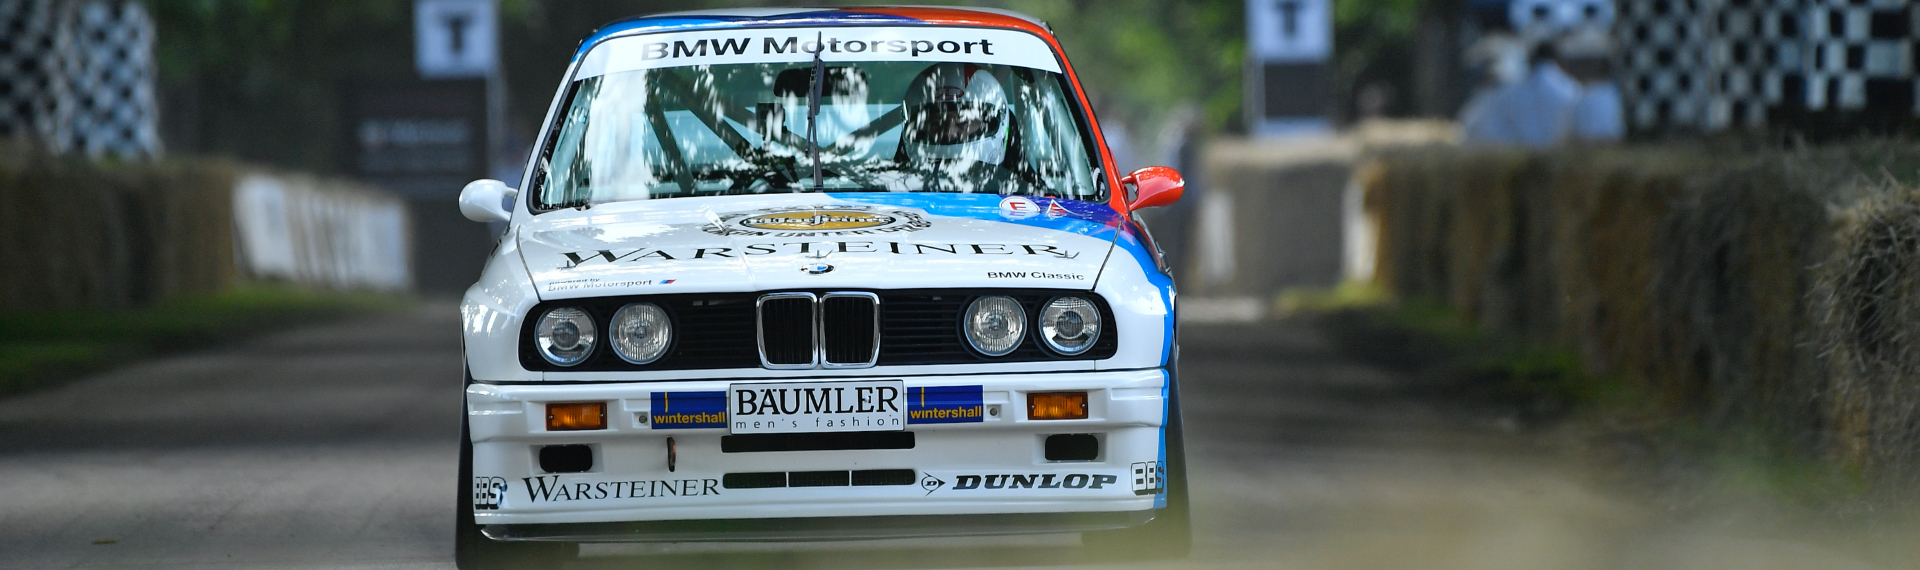 BMW Goodwood